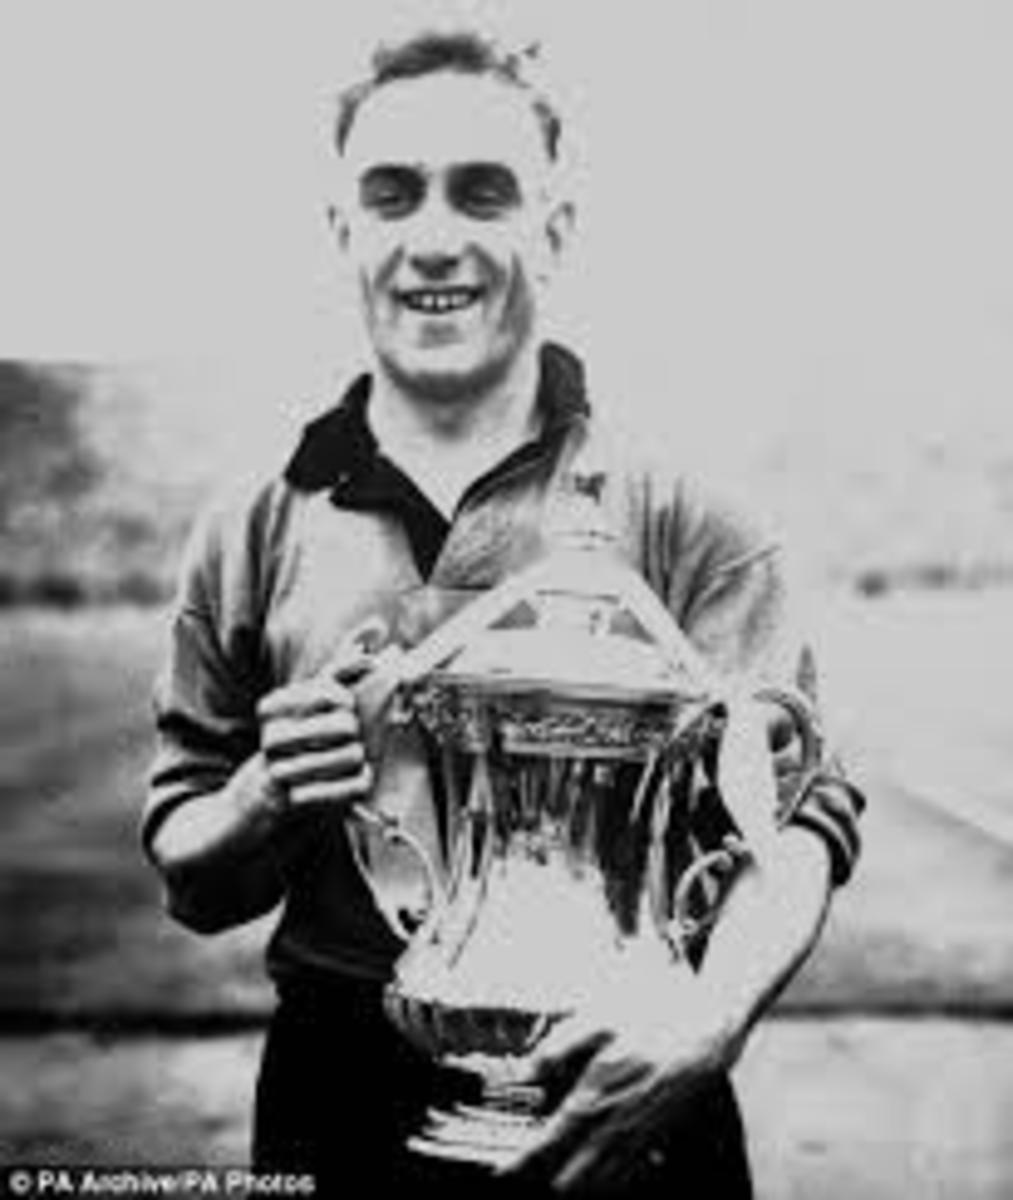 Wright with the FA Cup.